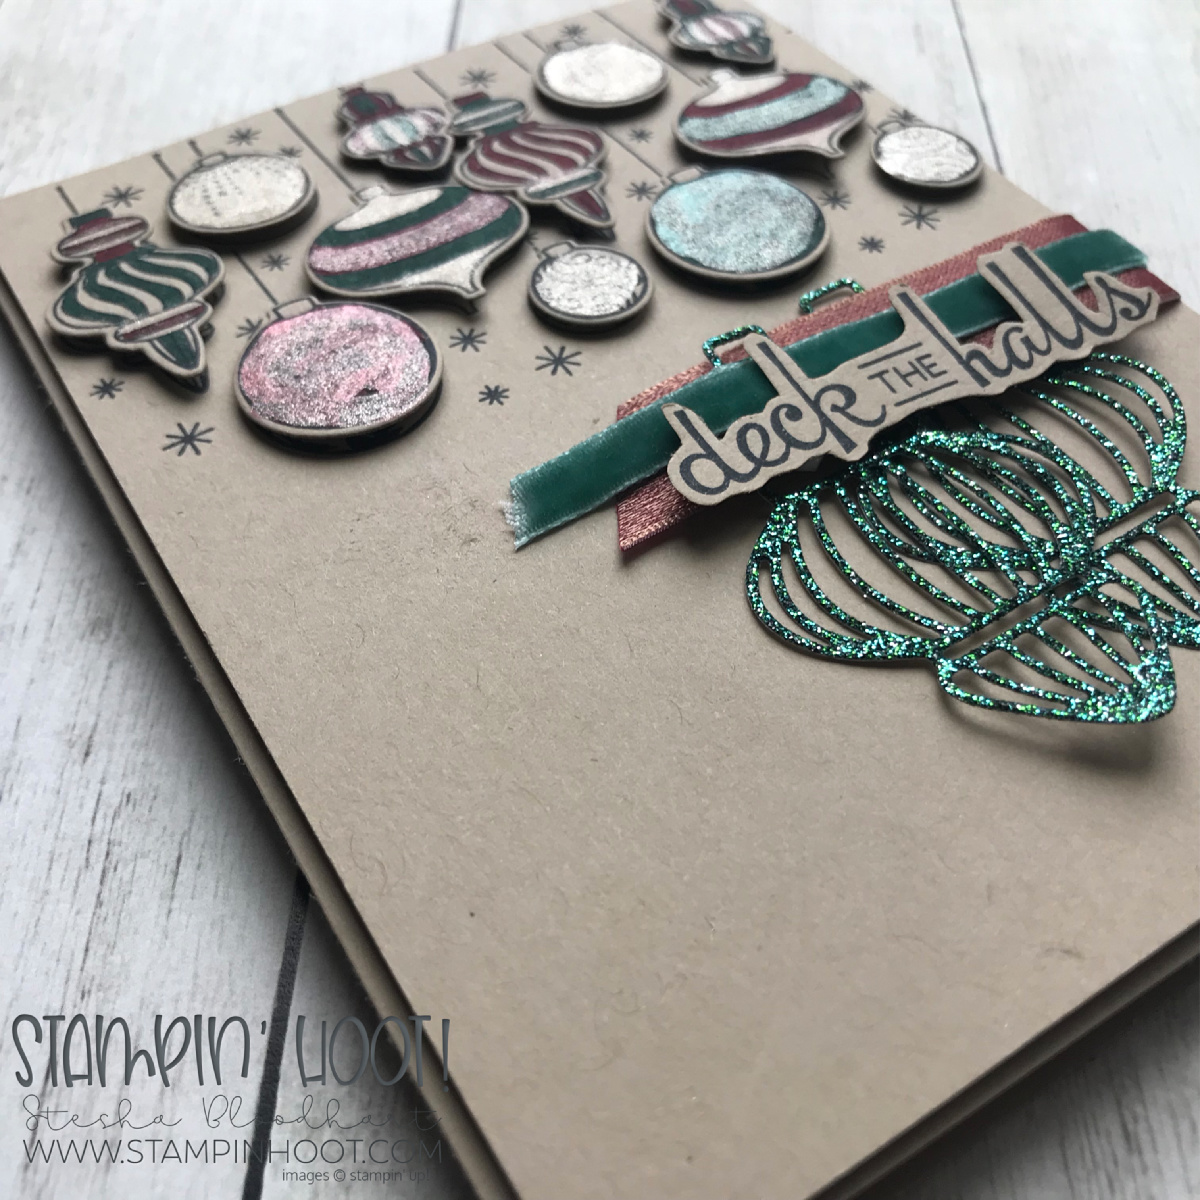 Beautiful Baubles Bundle by Stampin' Up! Holiday Card created by Stesha Bloodhart, Stampin' Hoot! for #GDP165 Color Challenge #steshabloodhart #stampinhoot